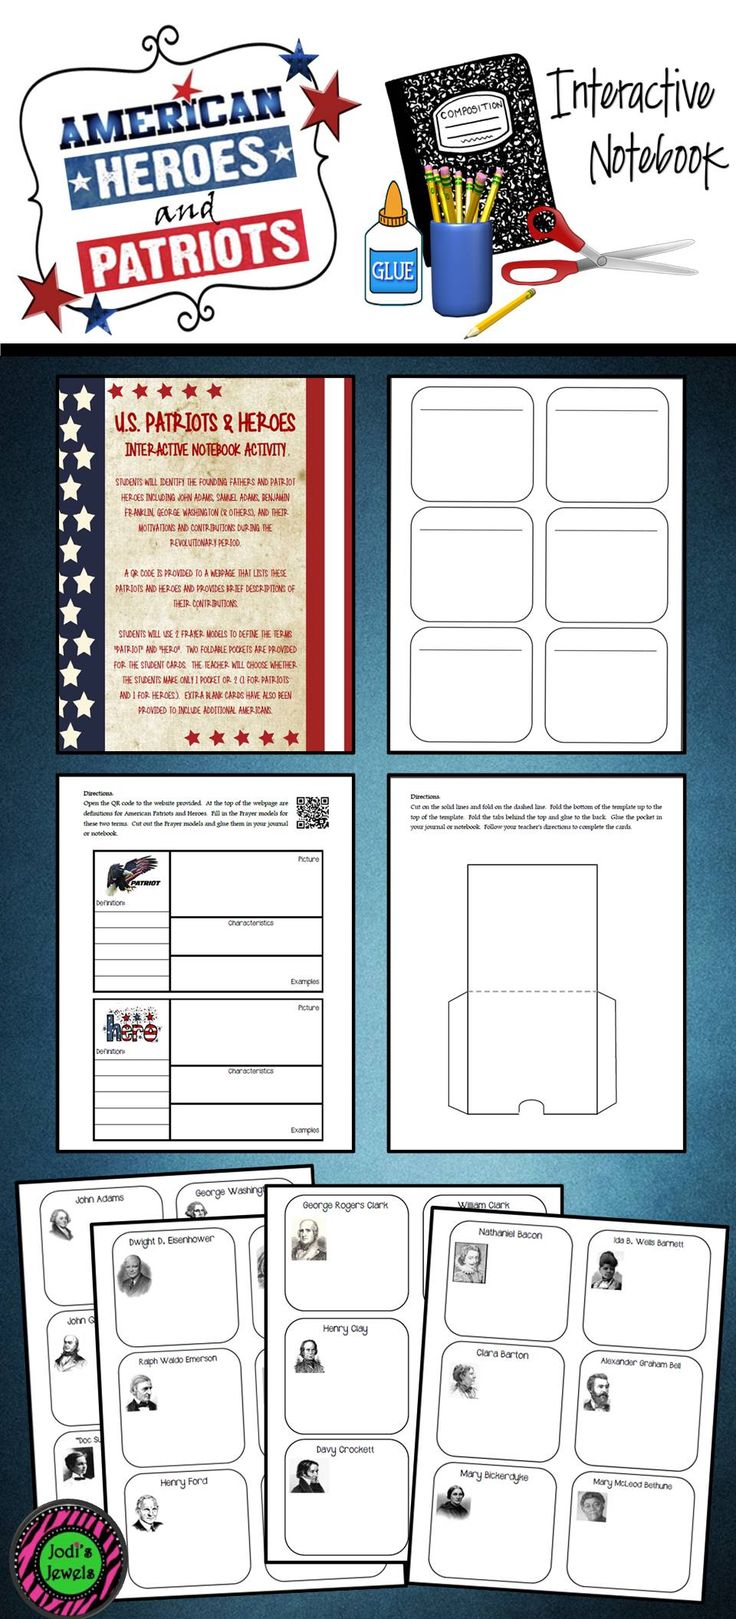 """Students will identify the founding fathers and Patriot heroes including John Adams, Samuel Adams, Benjamin Franklin, George Washington (& others), and their motivations and contributions during the Revolutionary period. A QR code is provided to a webpage that lists these patriots and heroes and provides brief descriptions of their contributions. Students will use 2 Frayer models to define the terms """"patriot"""" and """"hero"""". Two foldable pockets are provided for the student cards."""